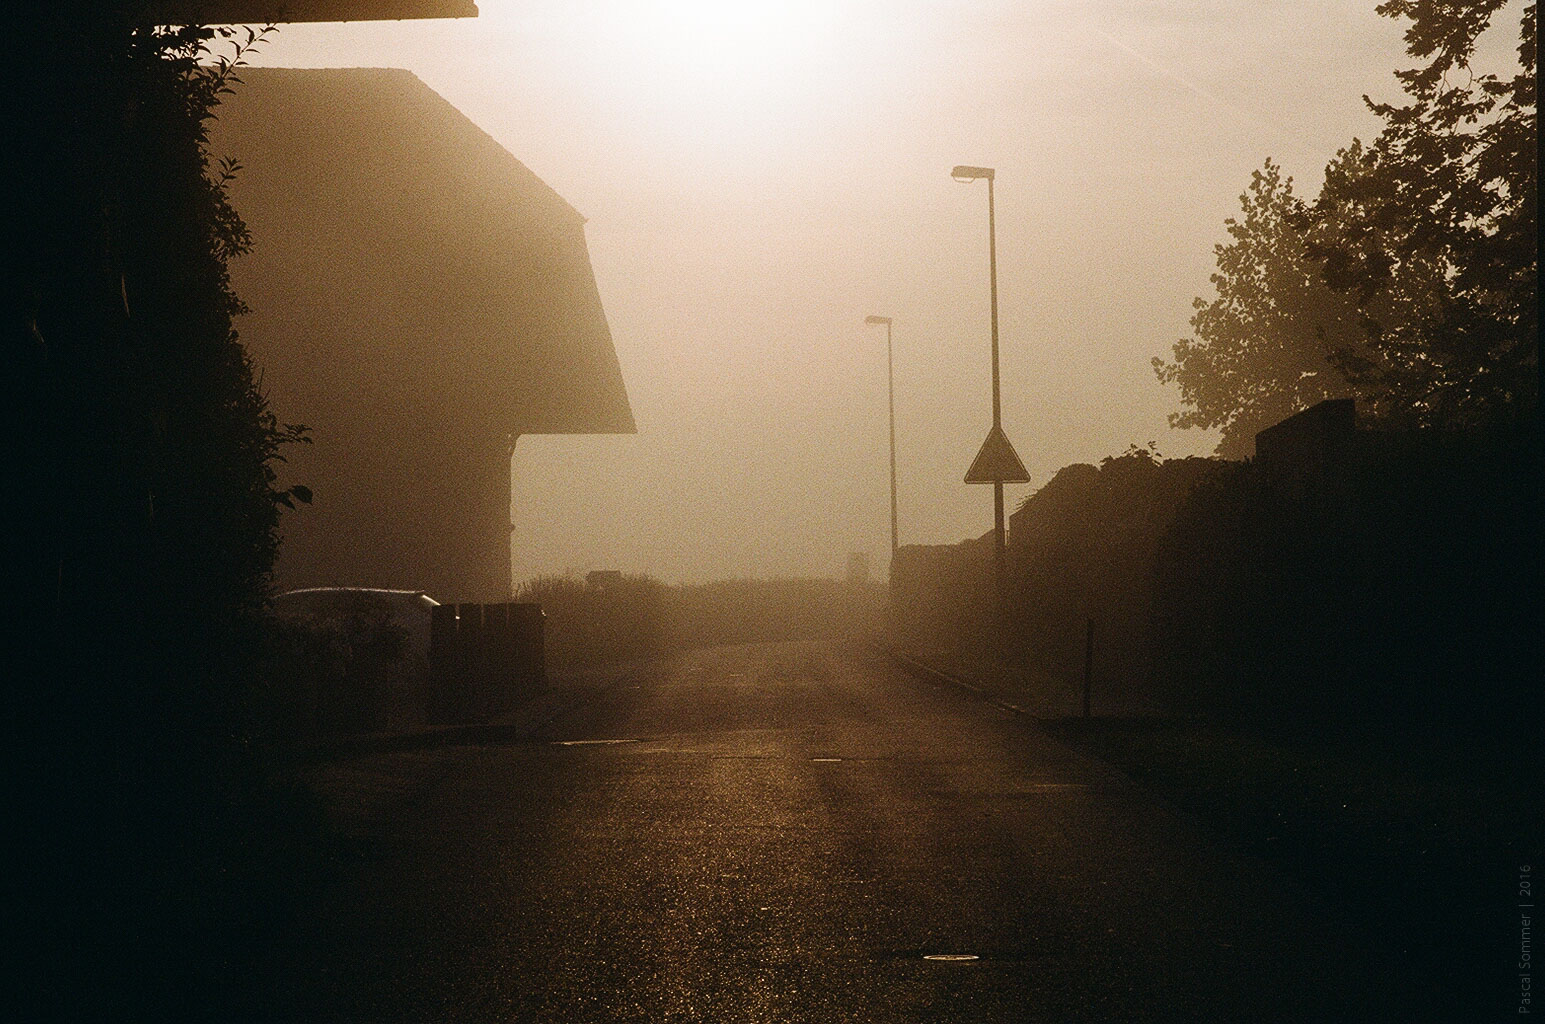 Photo by Pascal Sommer - Fog, early in the morning. Shot on analog.